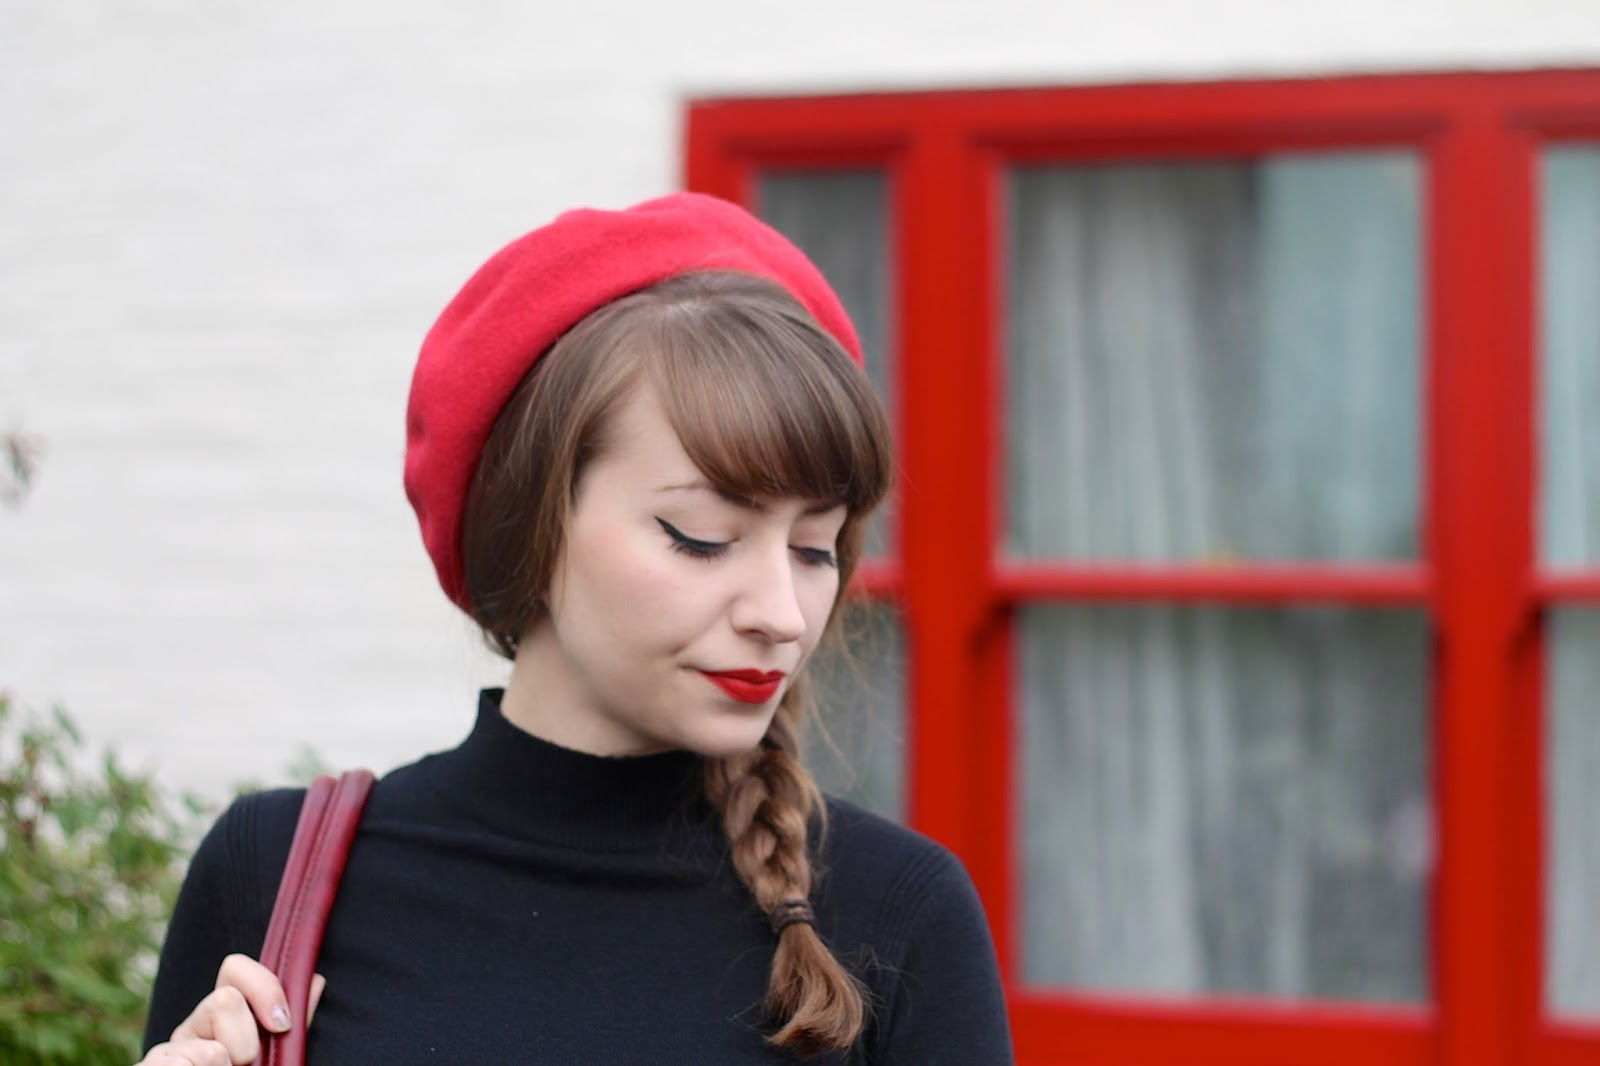 Red beret with black turtleneck